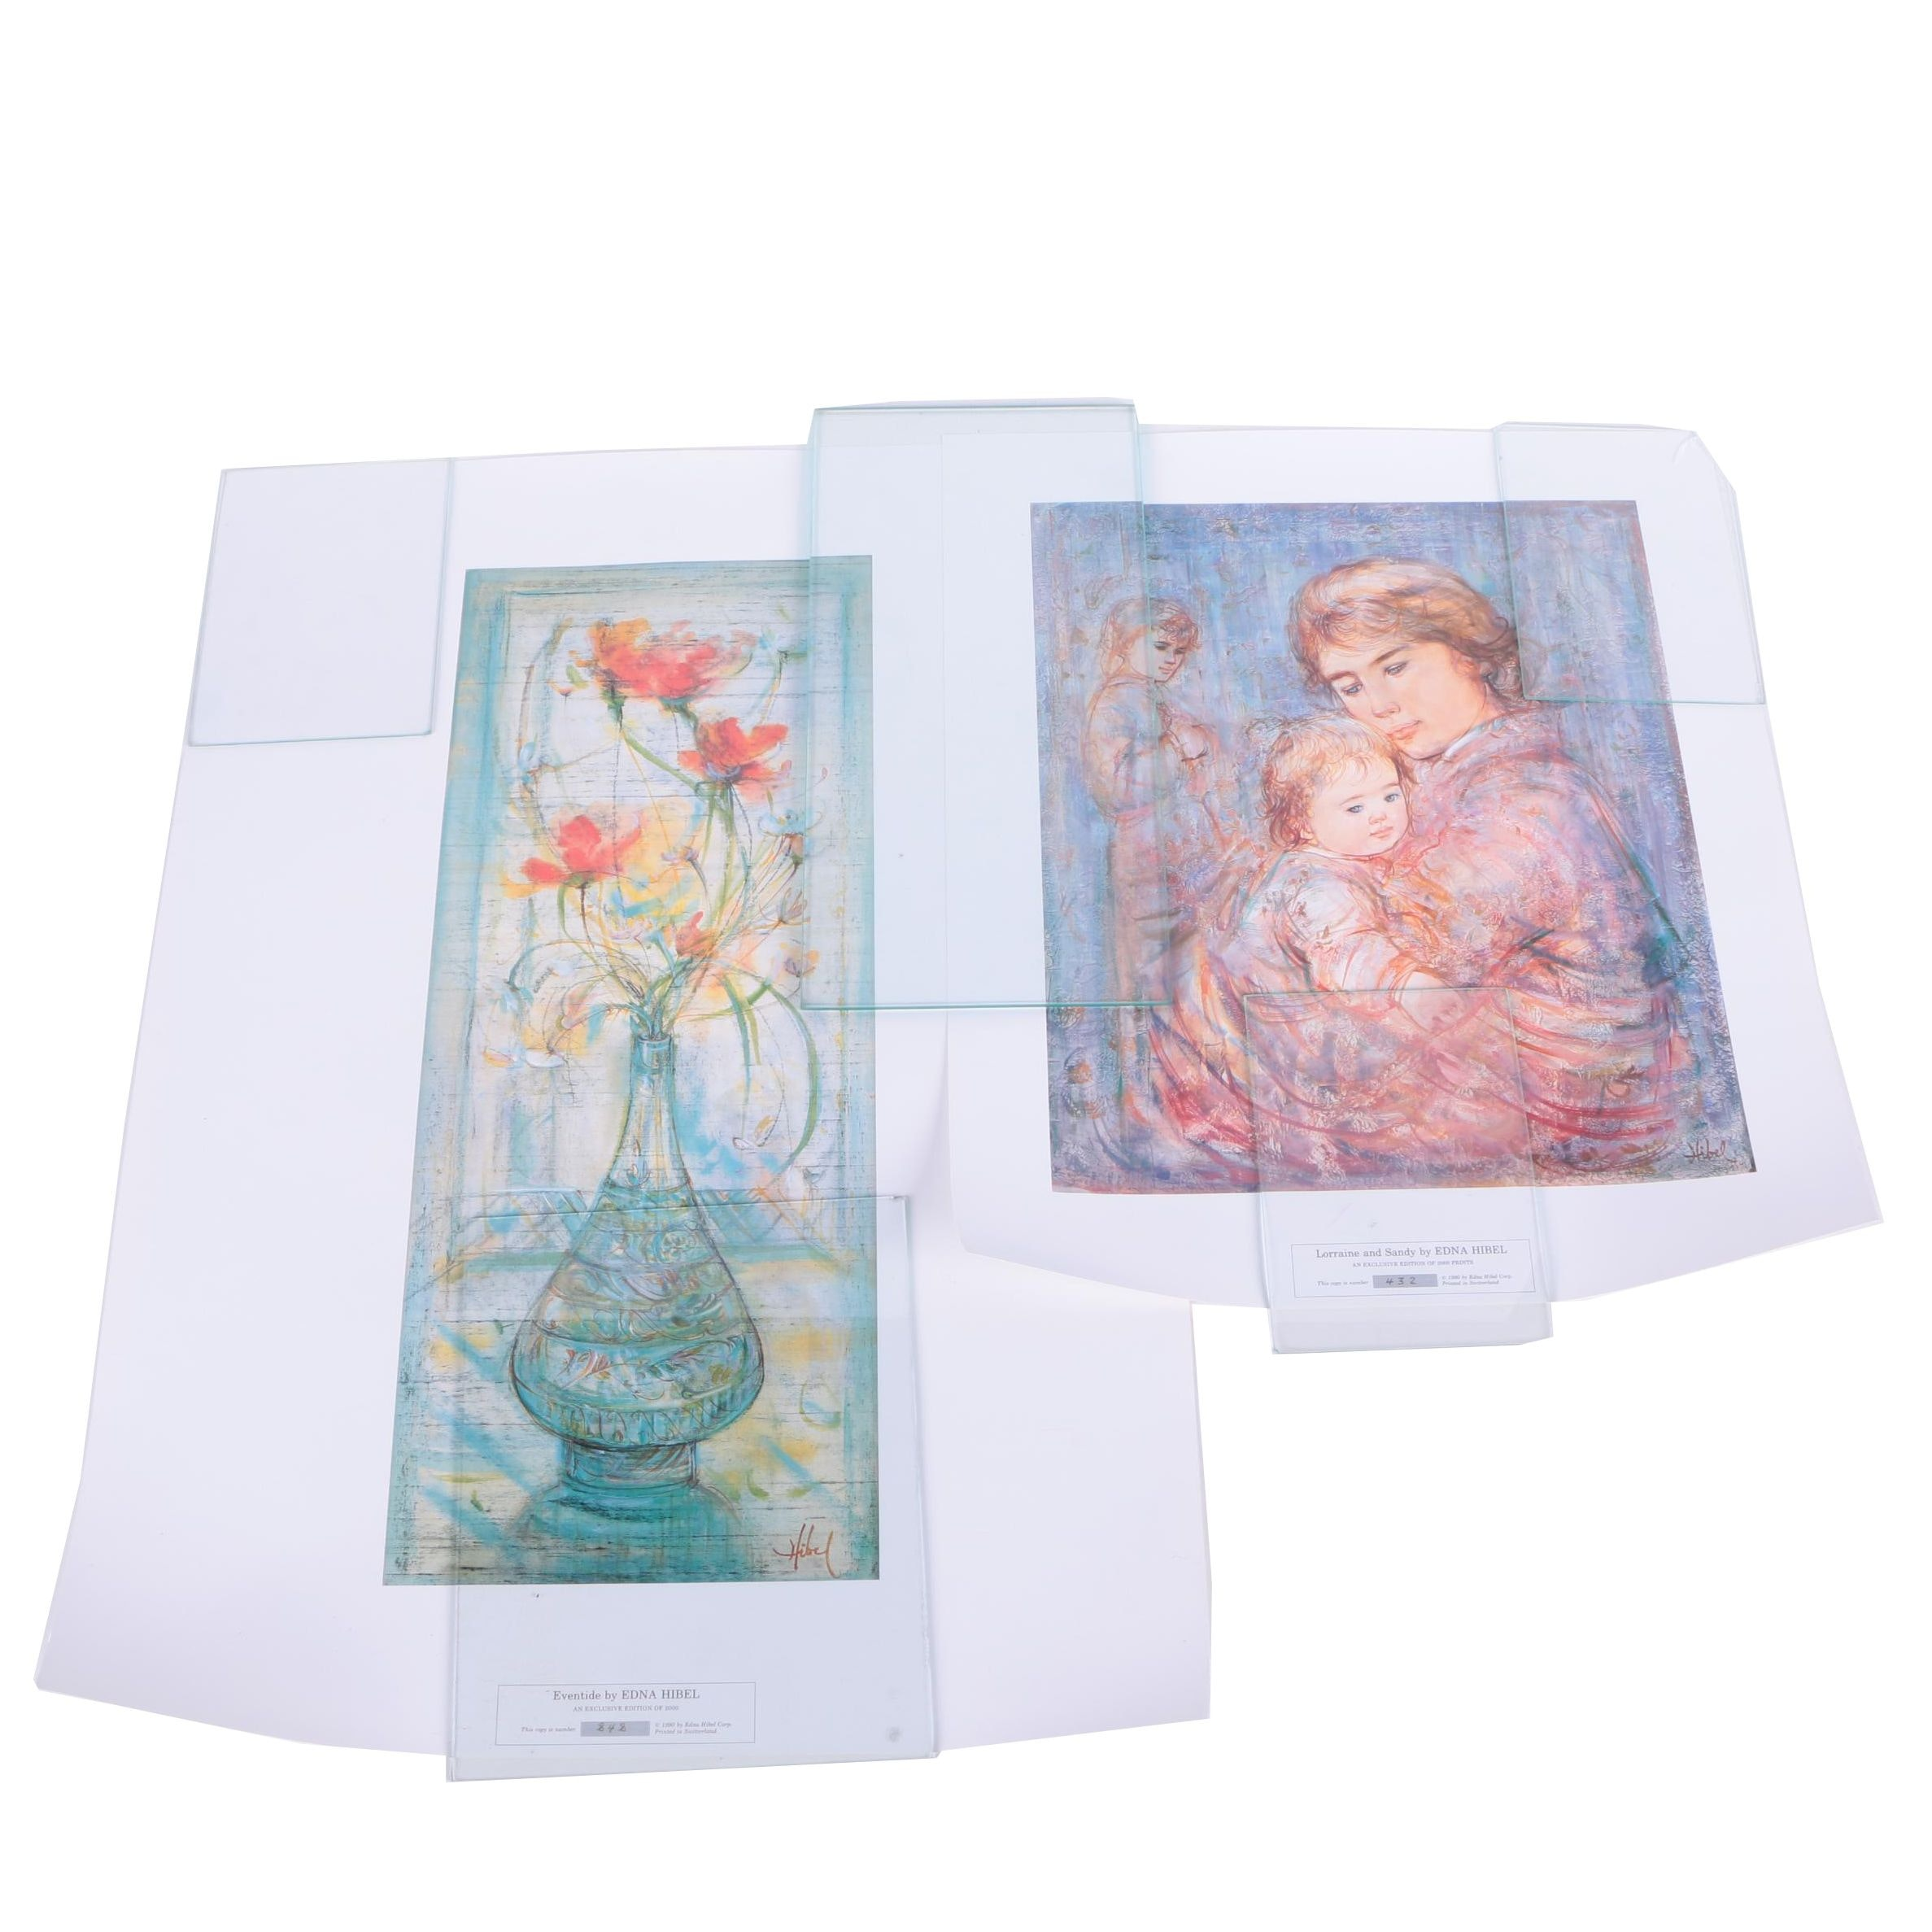 Two 1990 Limited Edition Offset Lithographs After Images by Edna Hibel Plotkin